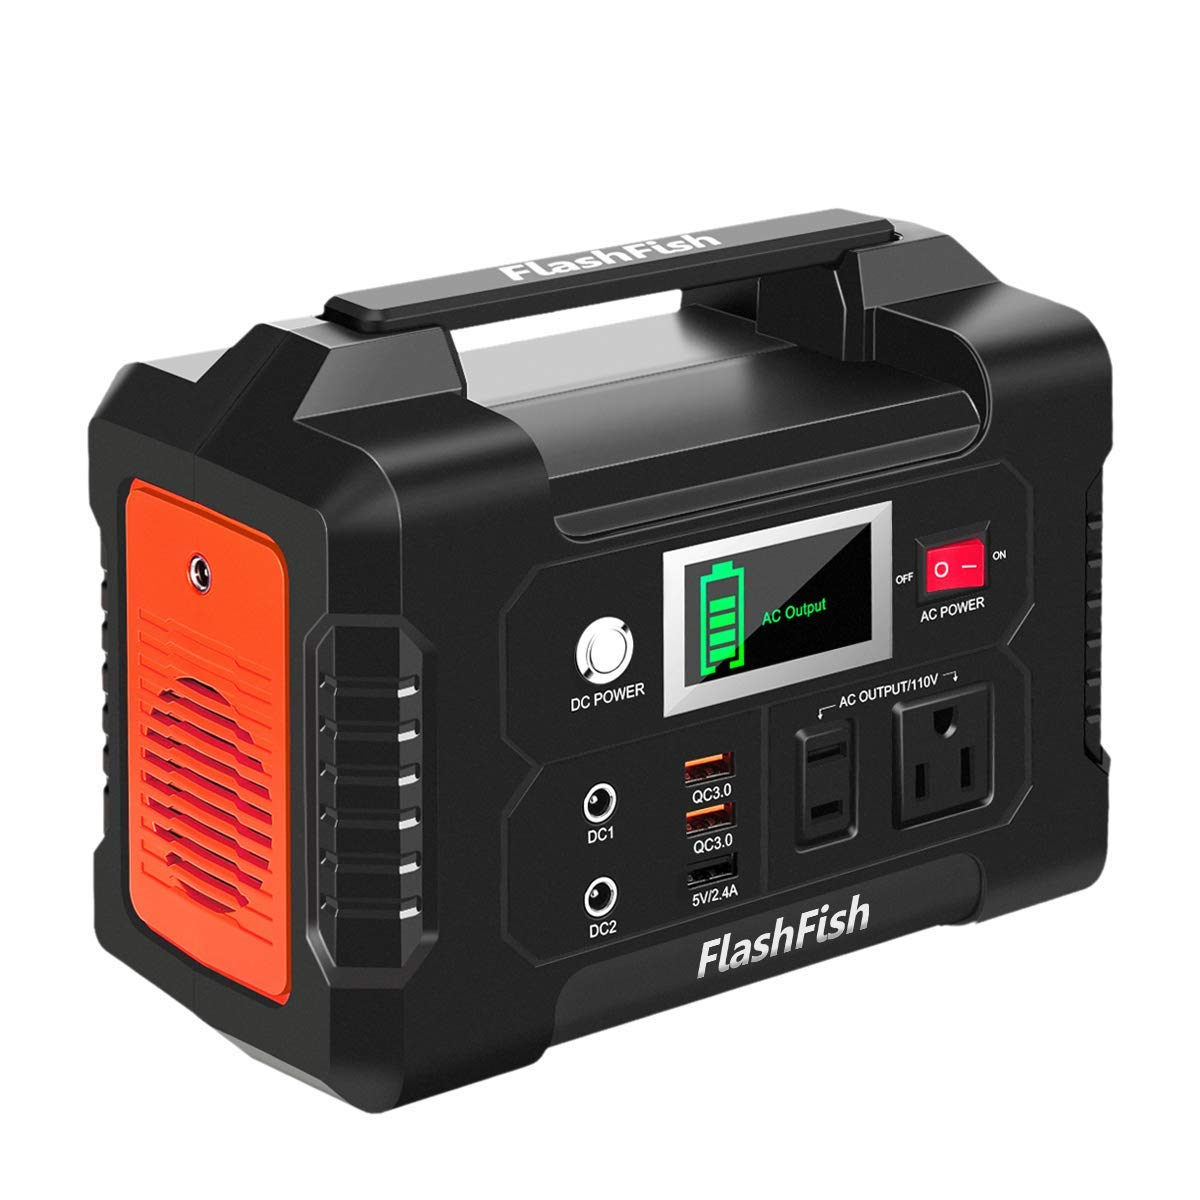 200W Portable Power Station, FlashFish 40800mAh Solar Generator with 110V AC Outlet 2 DC Ports 3 USB Ports, Battery Power Supply for CPAP Outdoor Adventure Load Trip Camping Emergency.